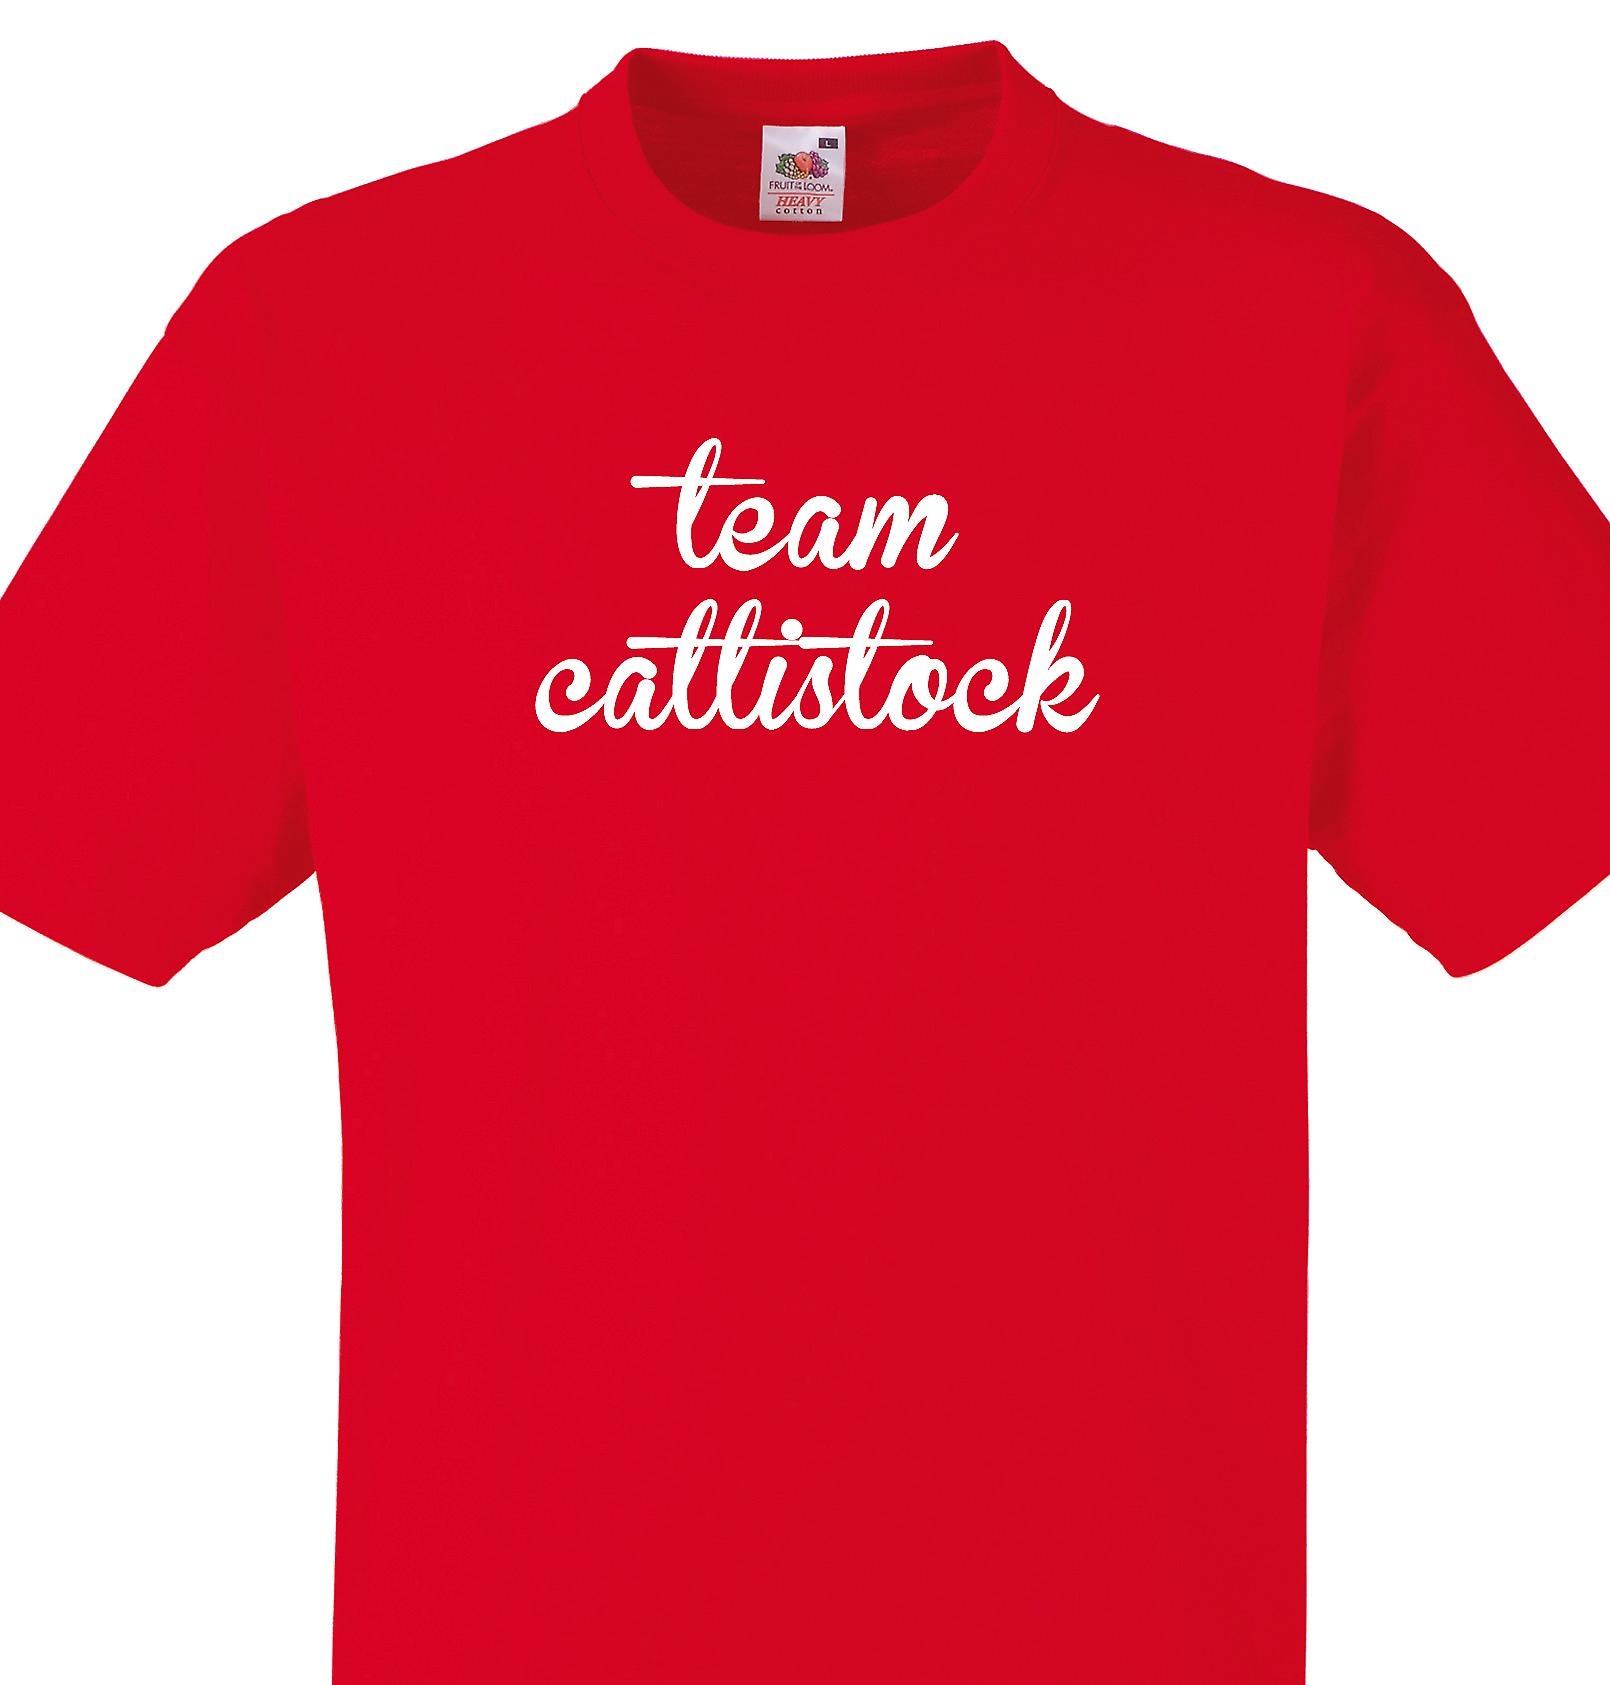 Team Cattistock Red T shirt